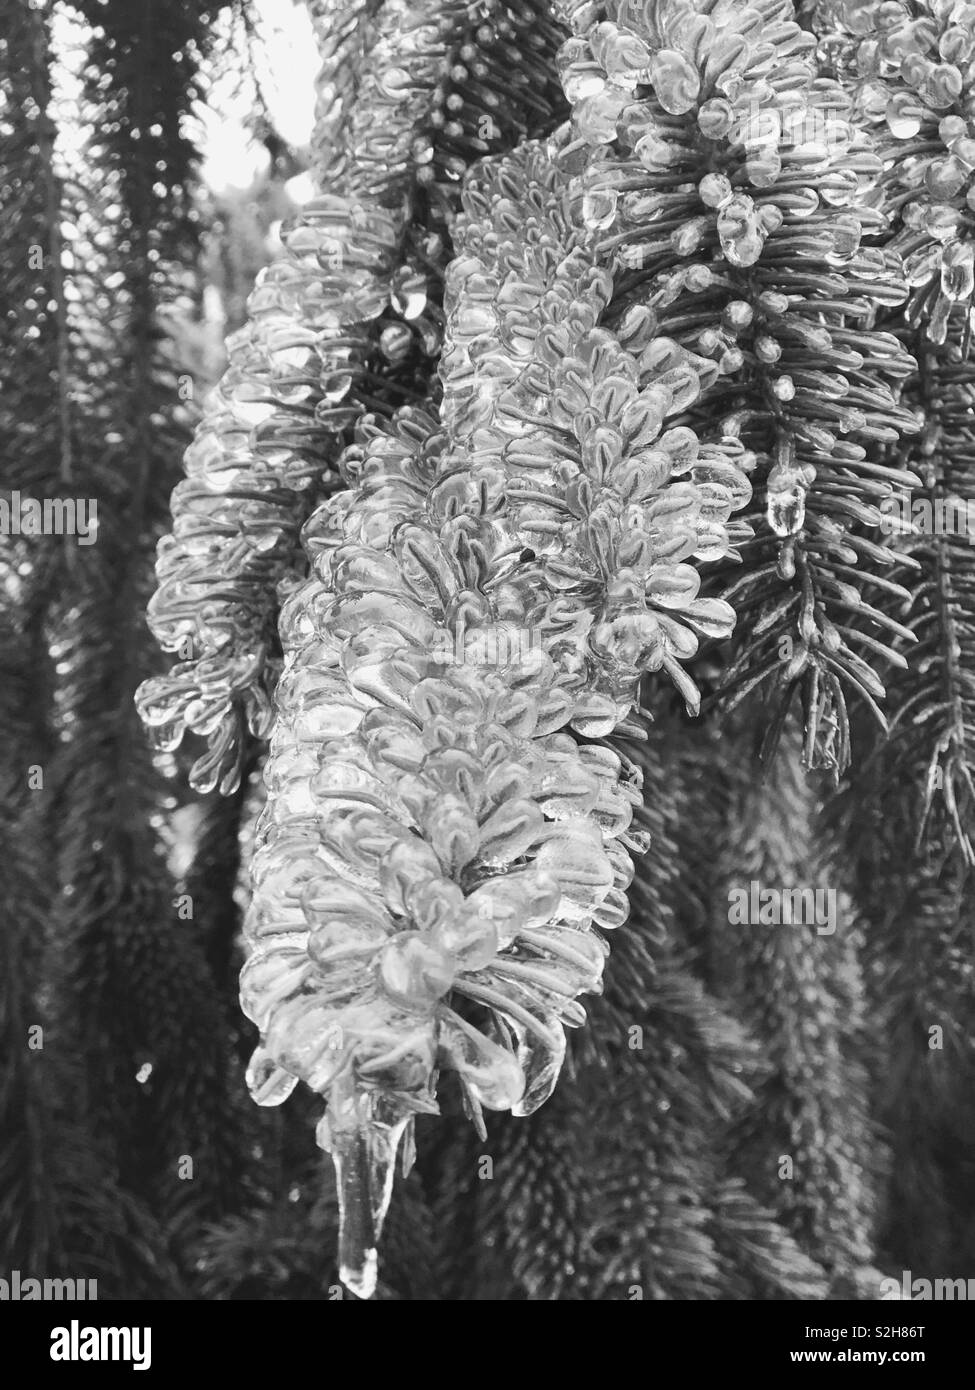 Ice from the pine tree - Stock Image